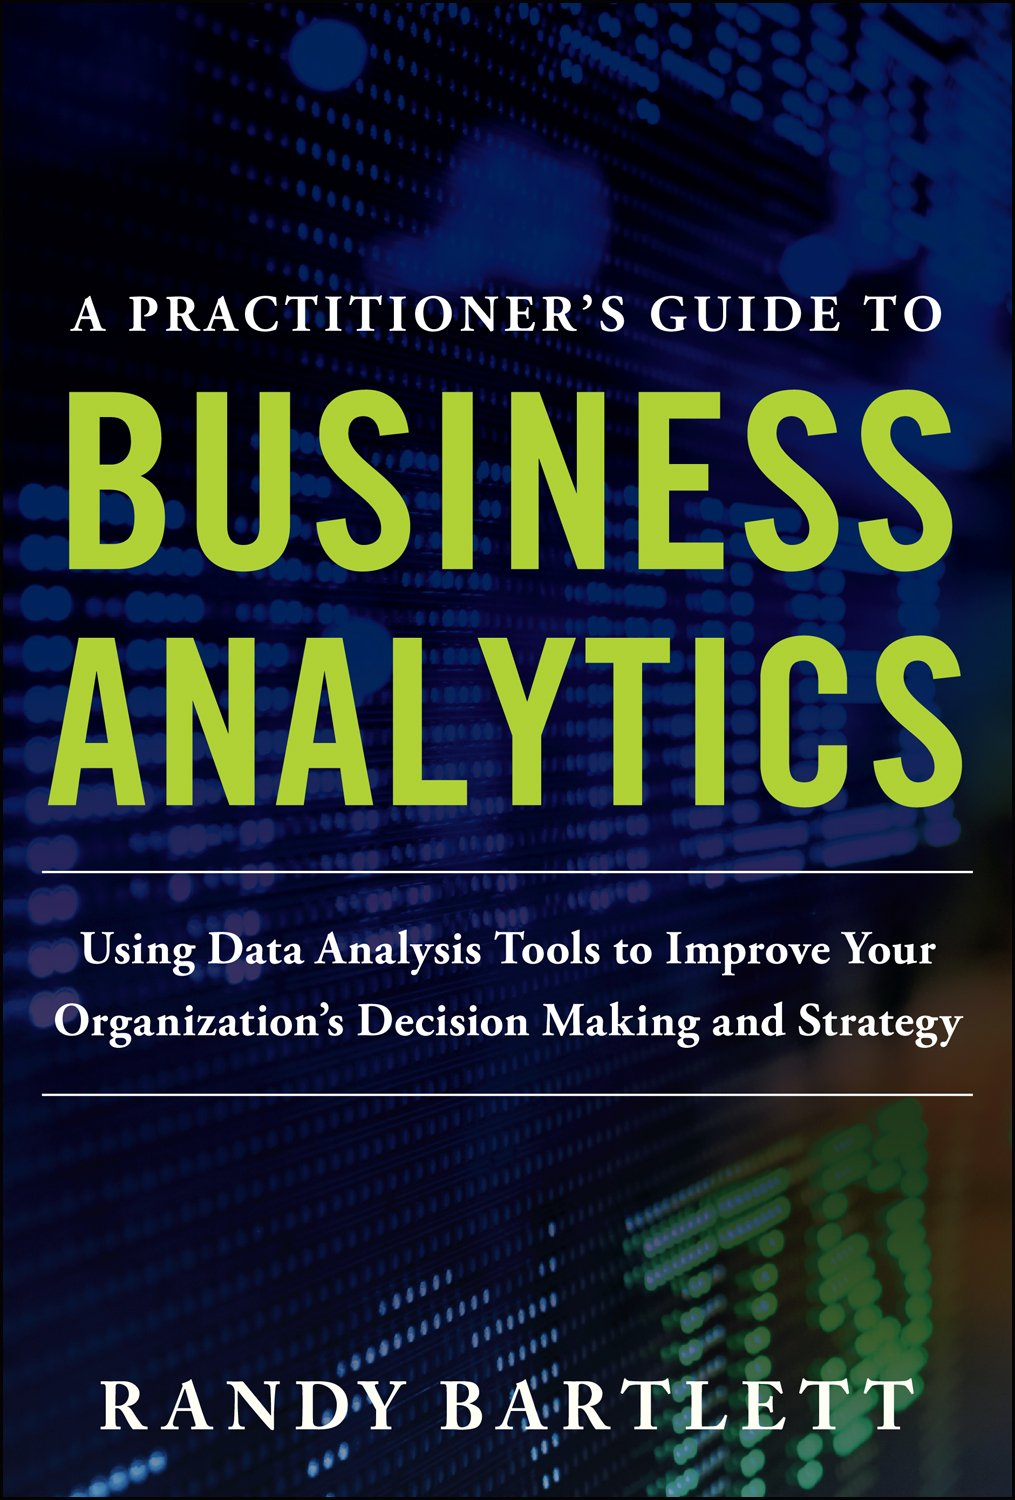 A PRACTITIONER'S GUIDE TO BUSINESS ANALYTICS: Using Data Analysis Tools to Improve Your Organization's Decision Making and Strategy